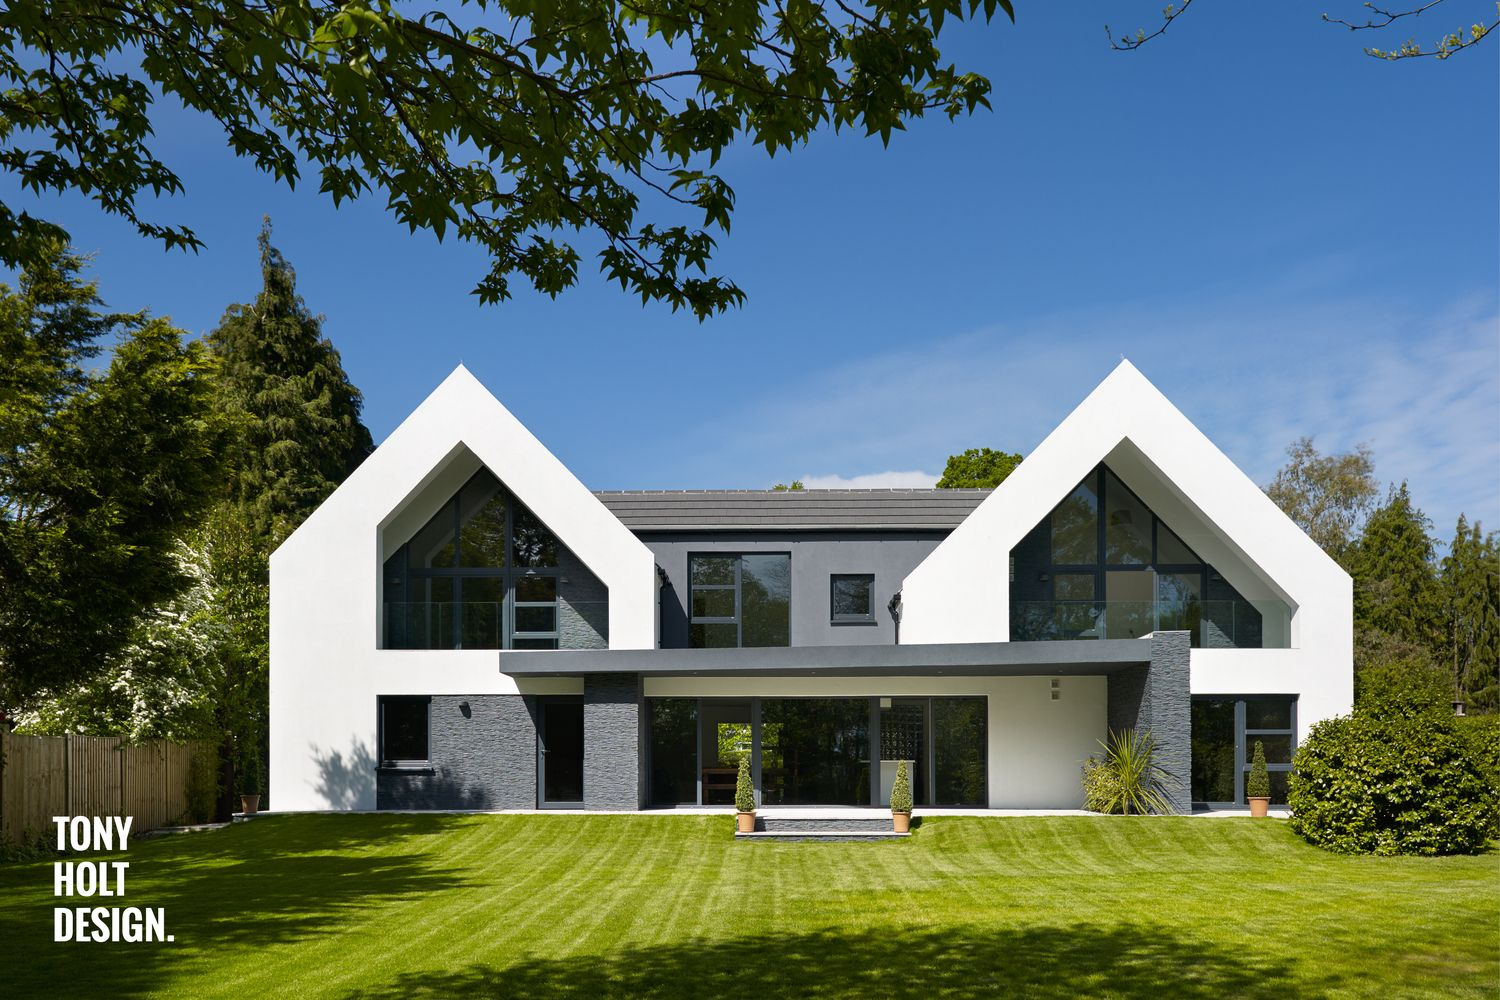 Tony Holt Design_Hurn Road_External_01_Landscape.jpg | Outside look ...